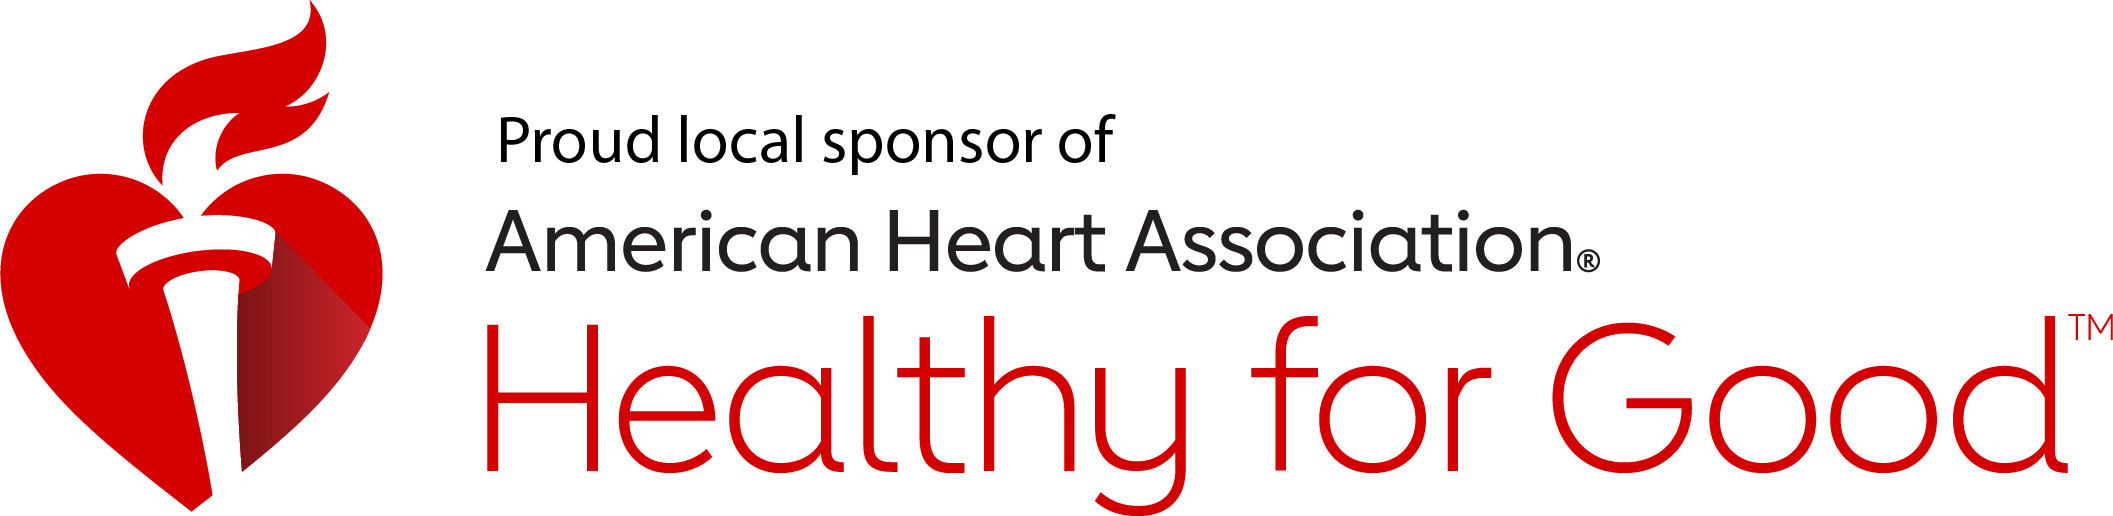 American Heart Association | Healthy for good badge